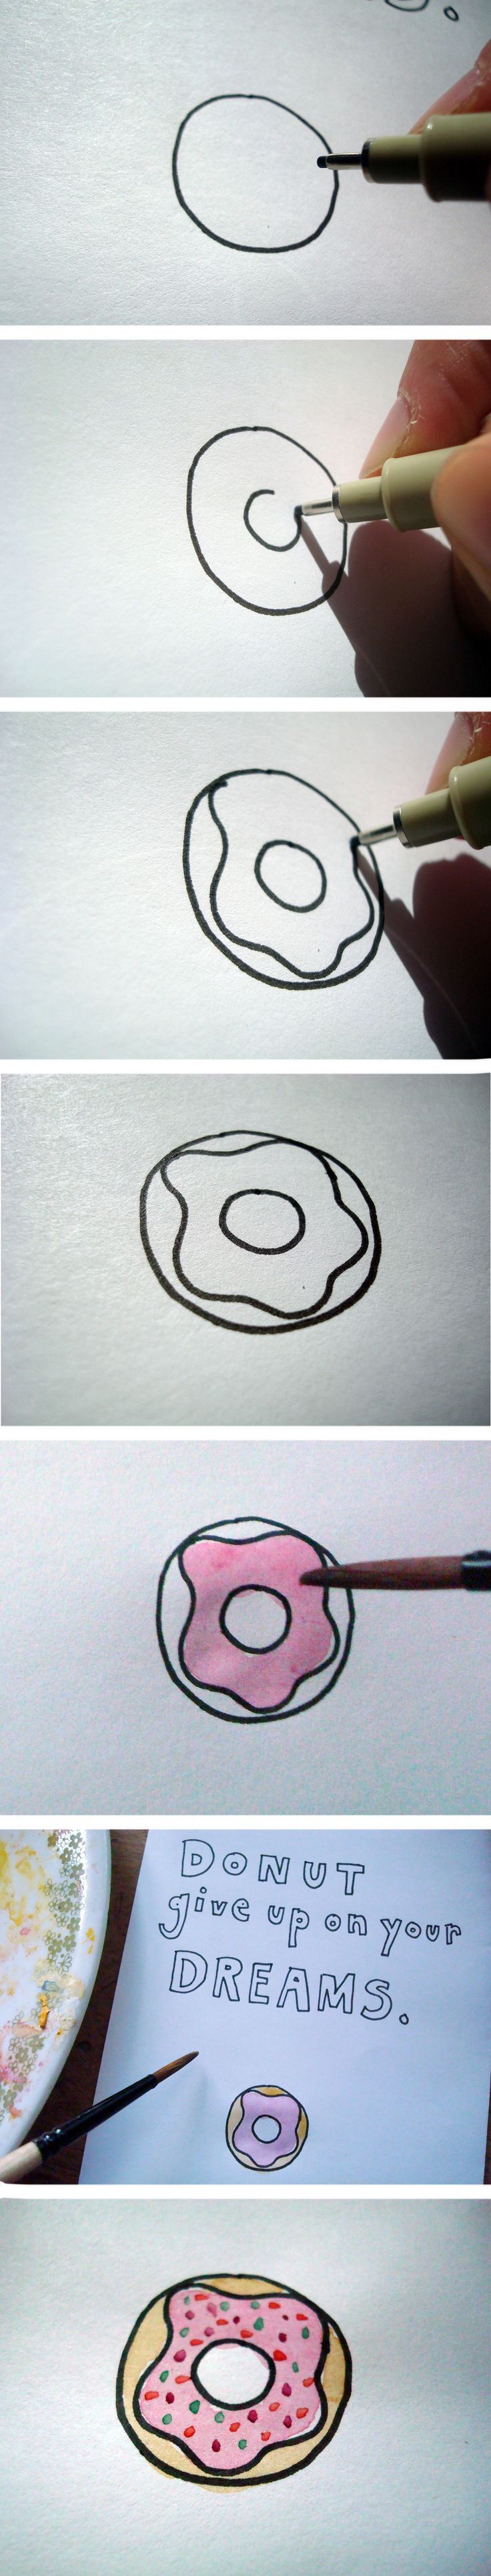 Drawing doughnuts is easy